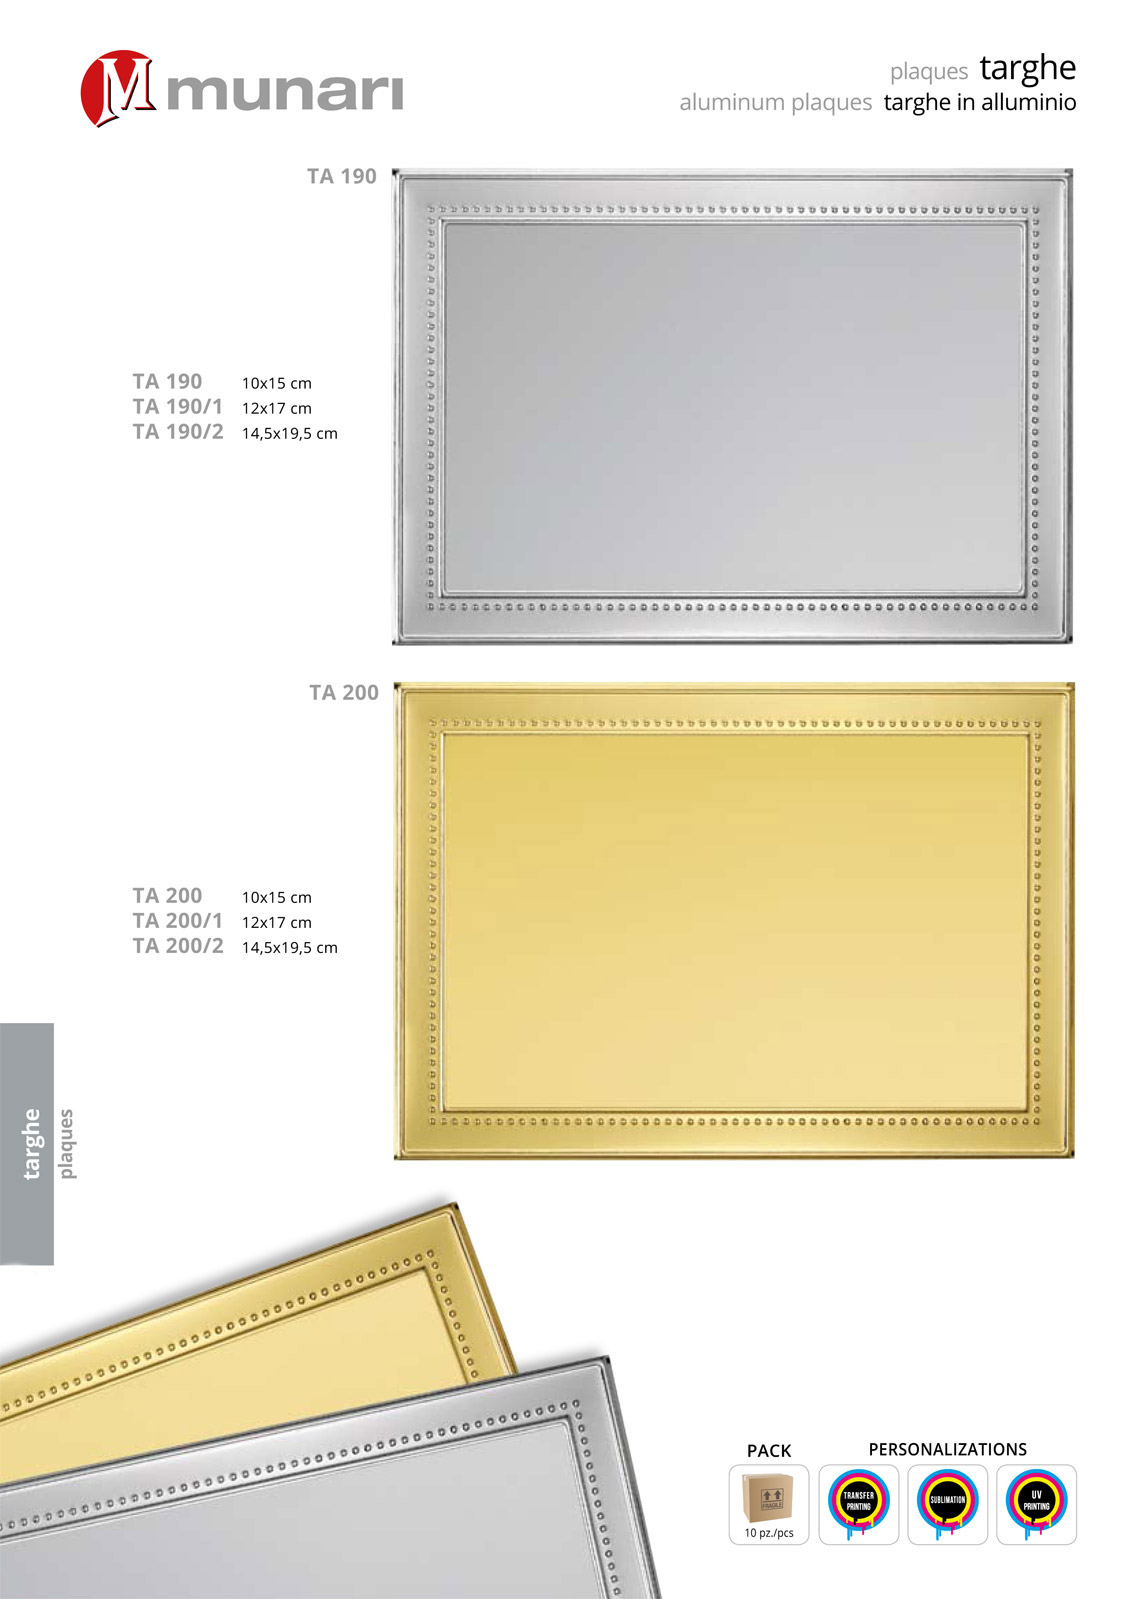 Aluminum plaques for sublimation or transfer printing series TA 190